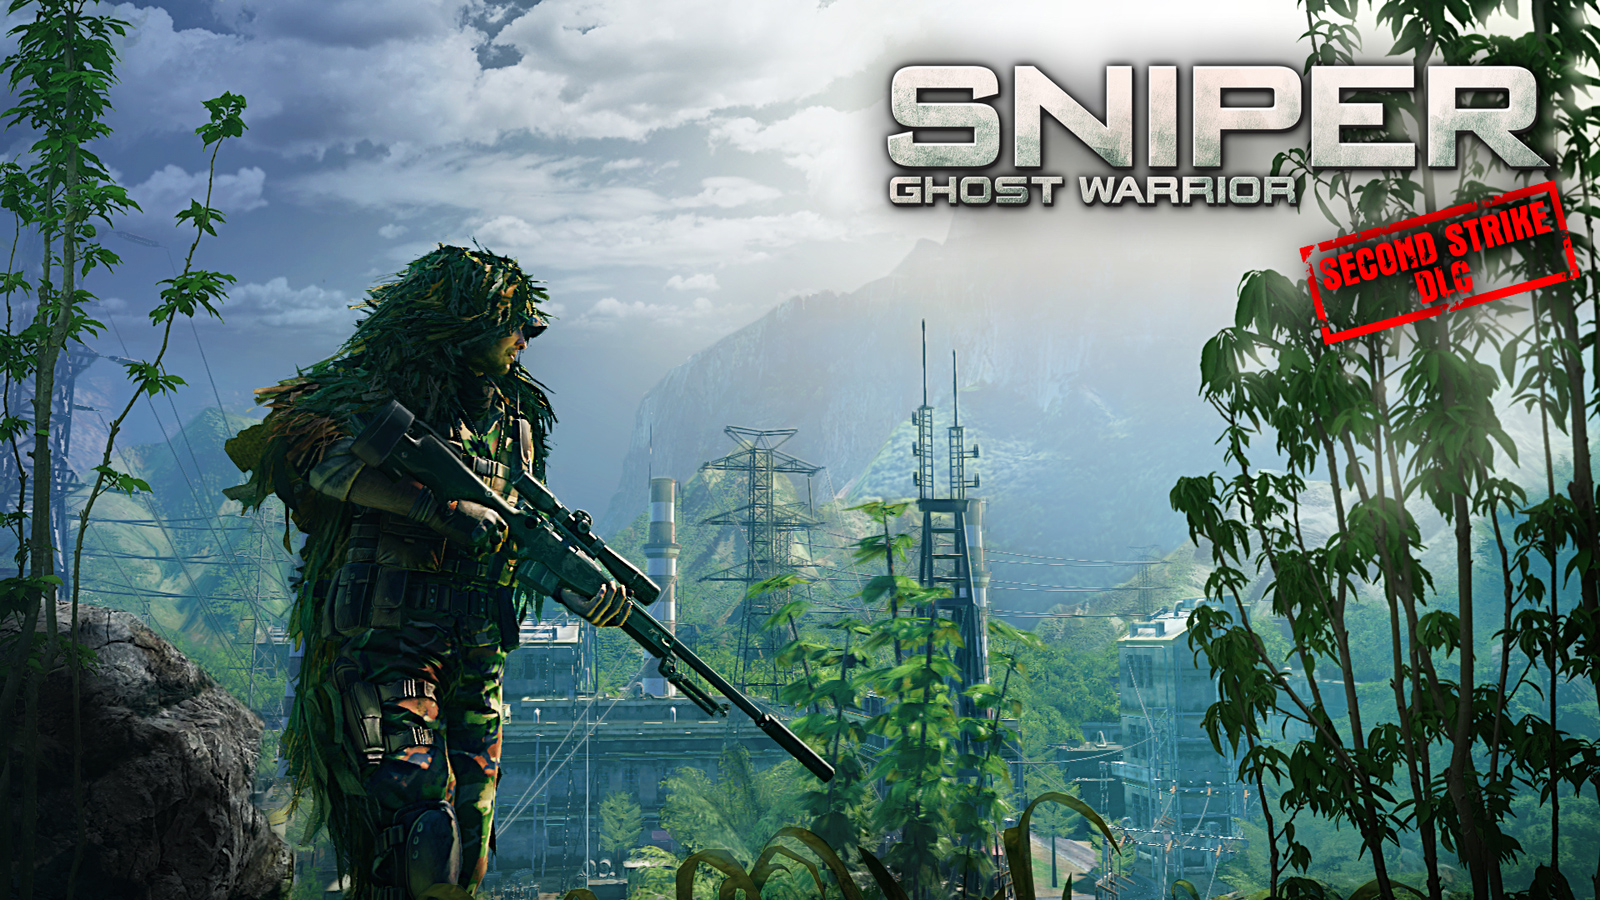 Sniper: Ghost Warrior - Second Strike screenshot